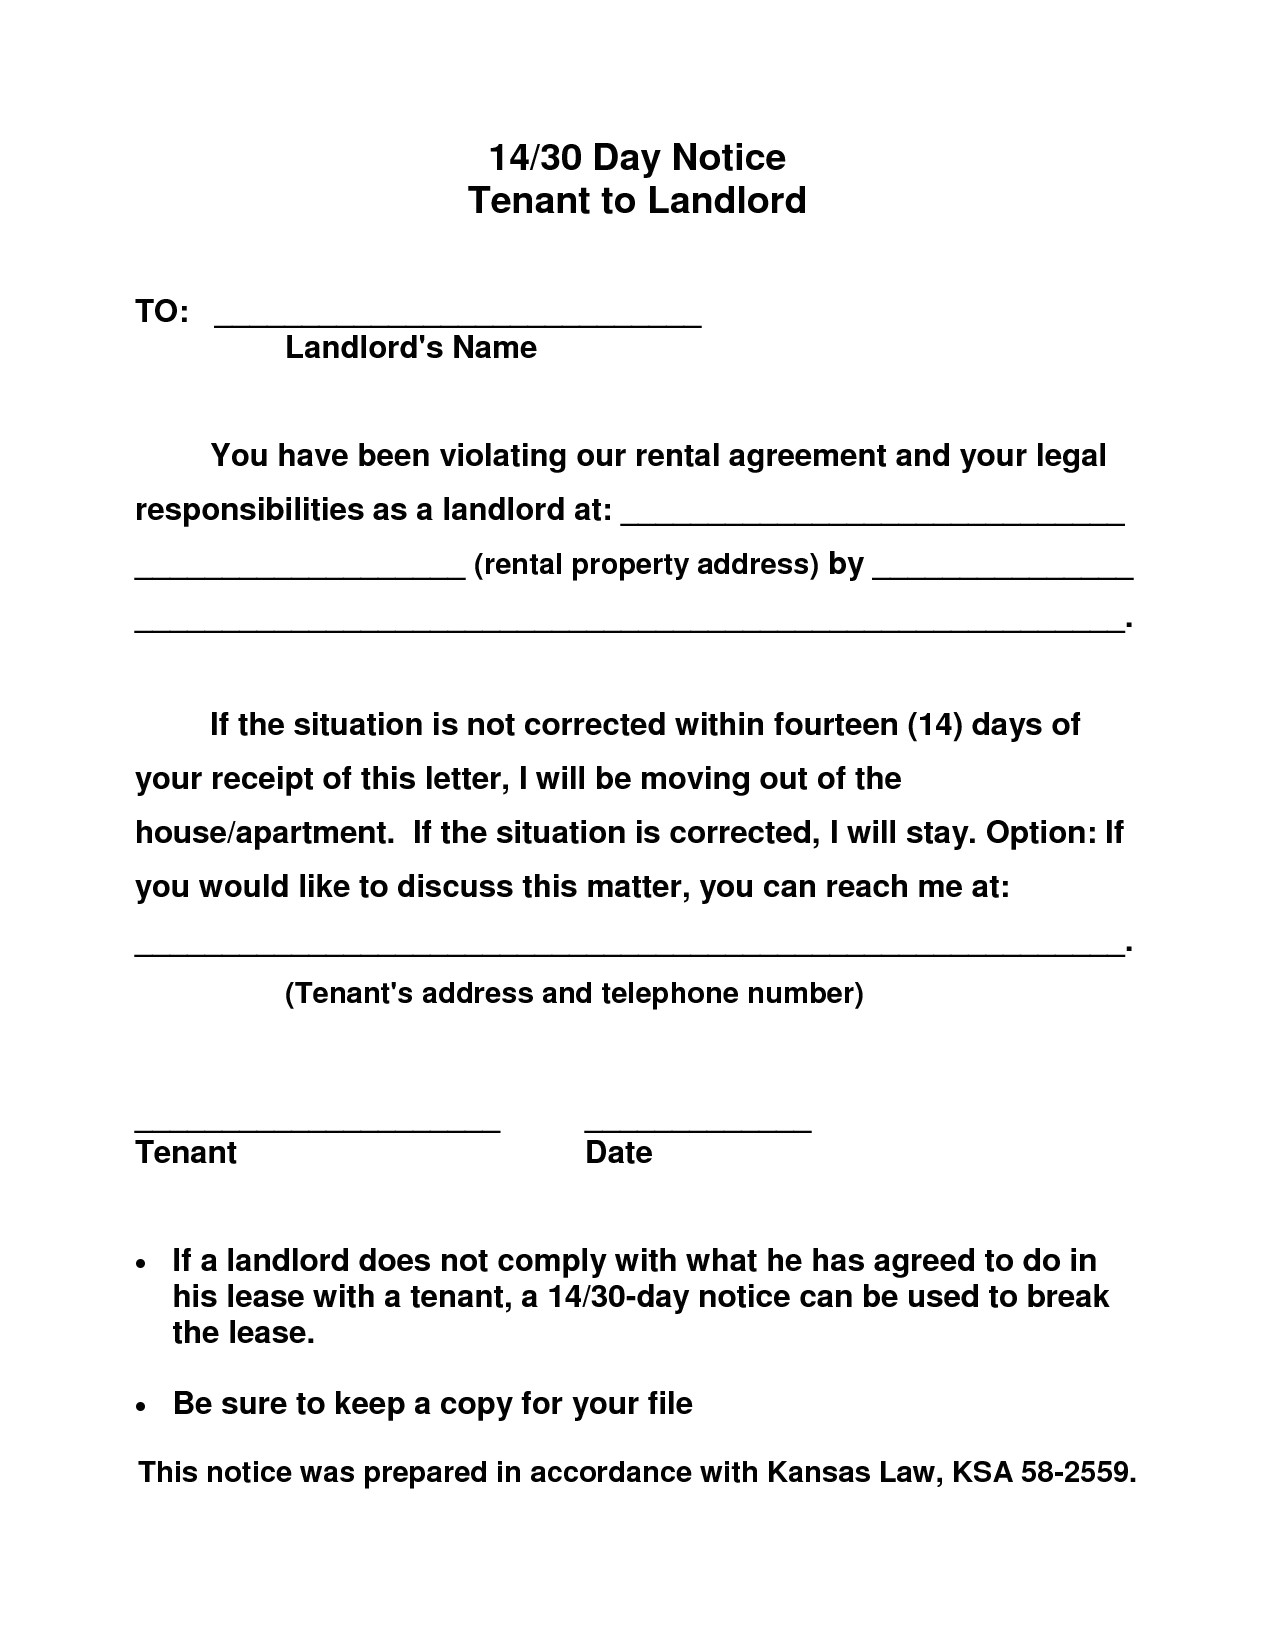 post 30 day notice to landlord template 487254